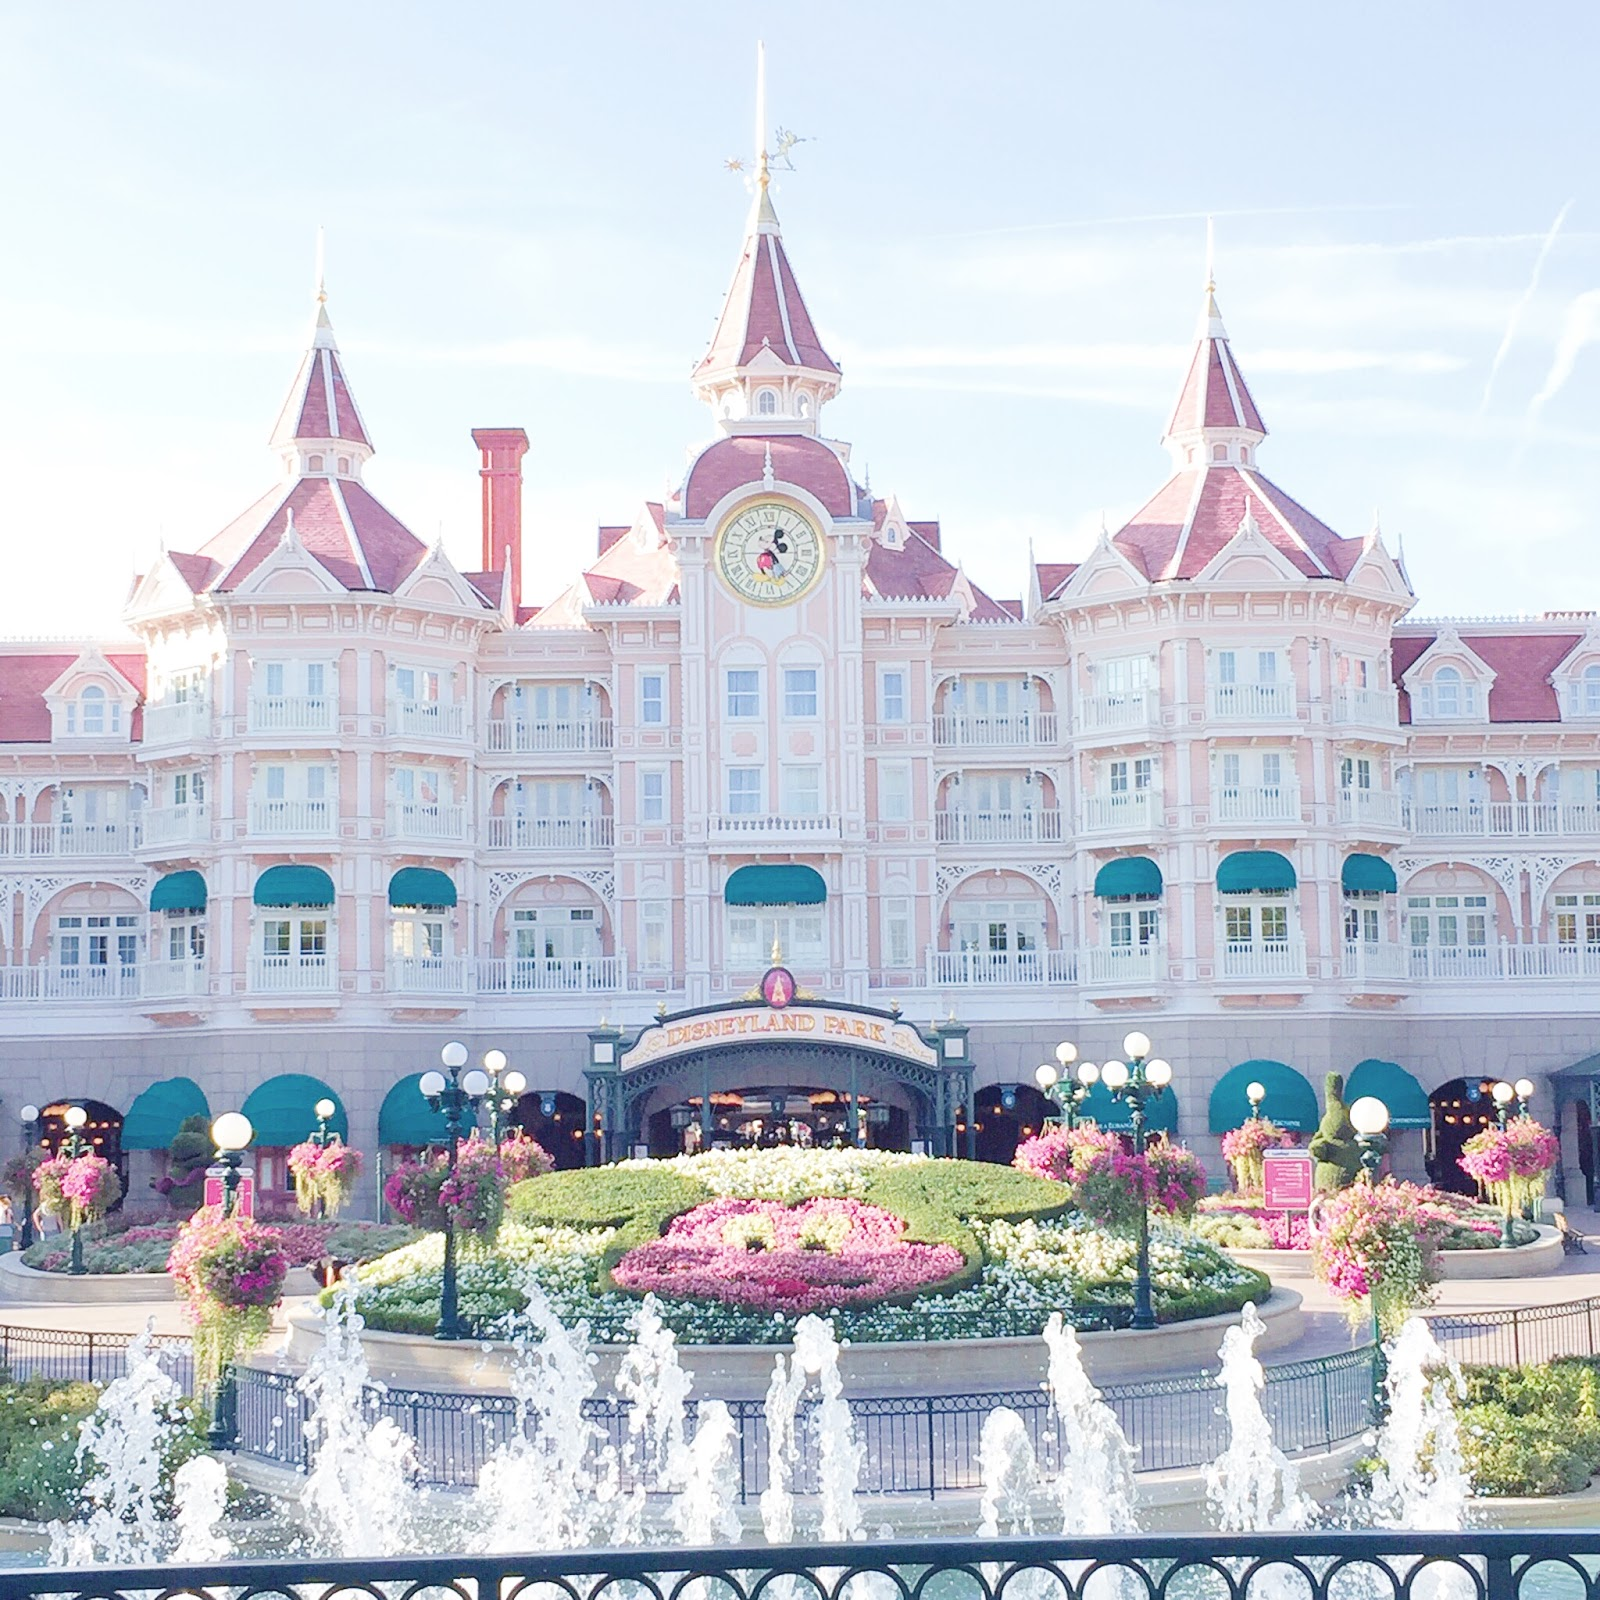 The Most Instagrammable Places At Disneyland Paris, Disneyland Paris, Travel, Disneyland Paris Photos, disneyland paris photo ideas, disneyland hotel